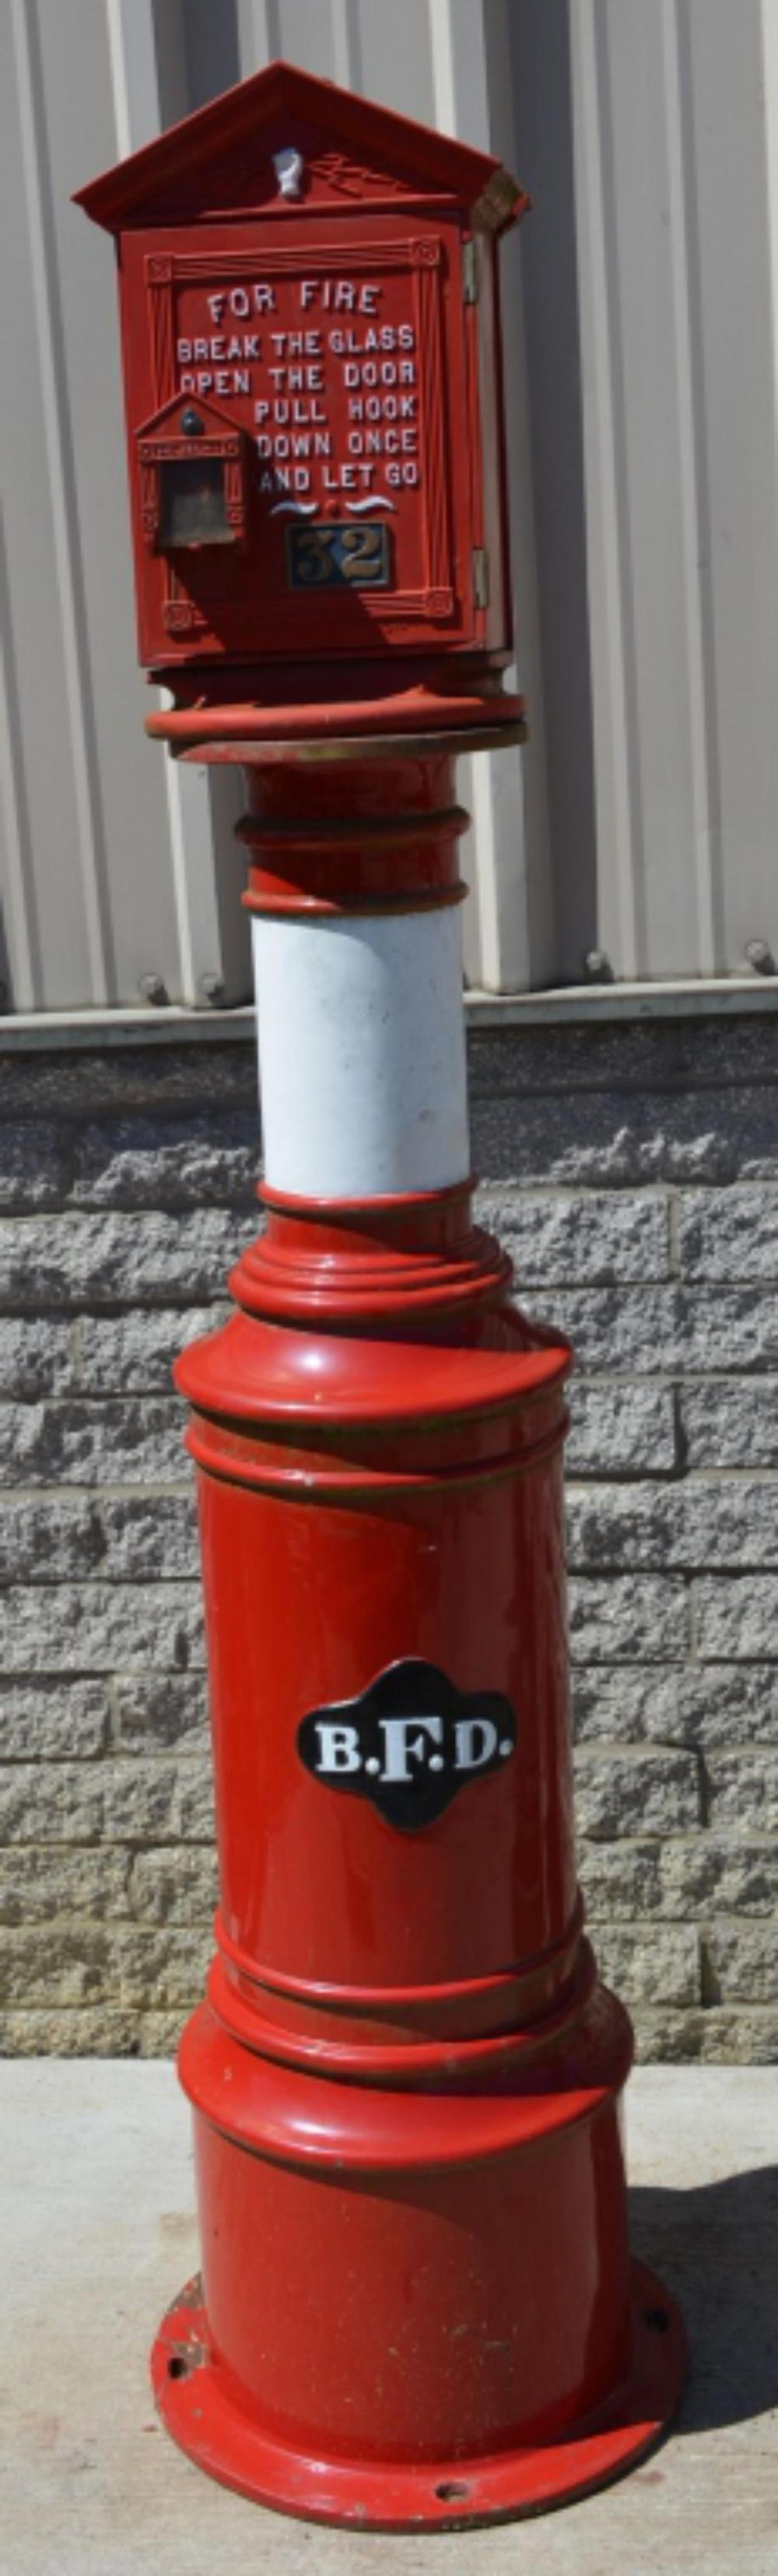 Gamewelll Fire Alarm Box on Cast Iron Pedestal BFD